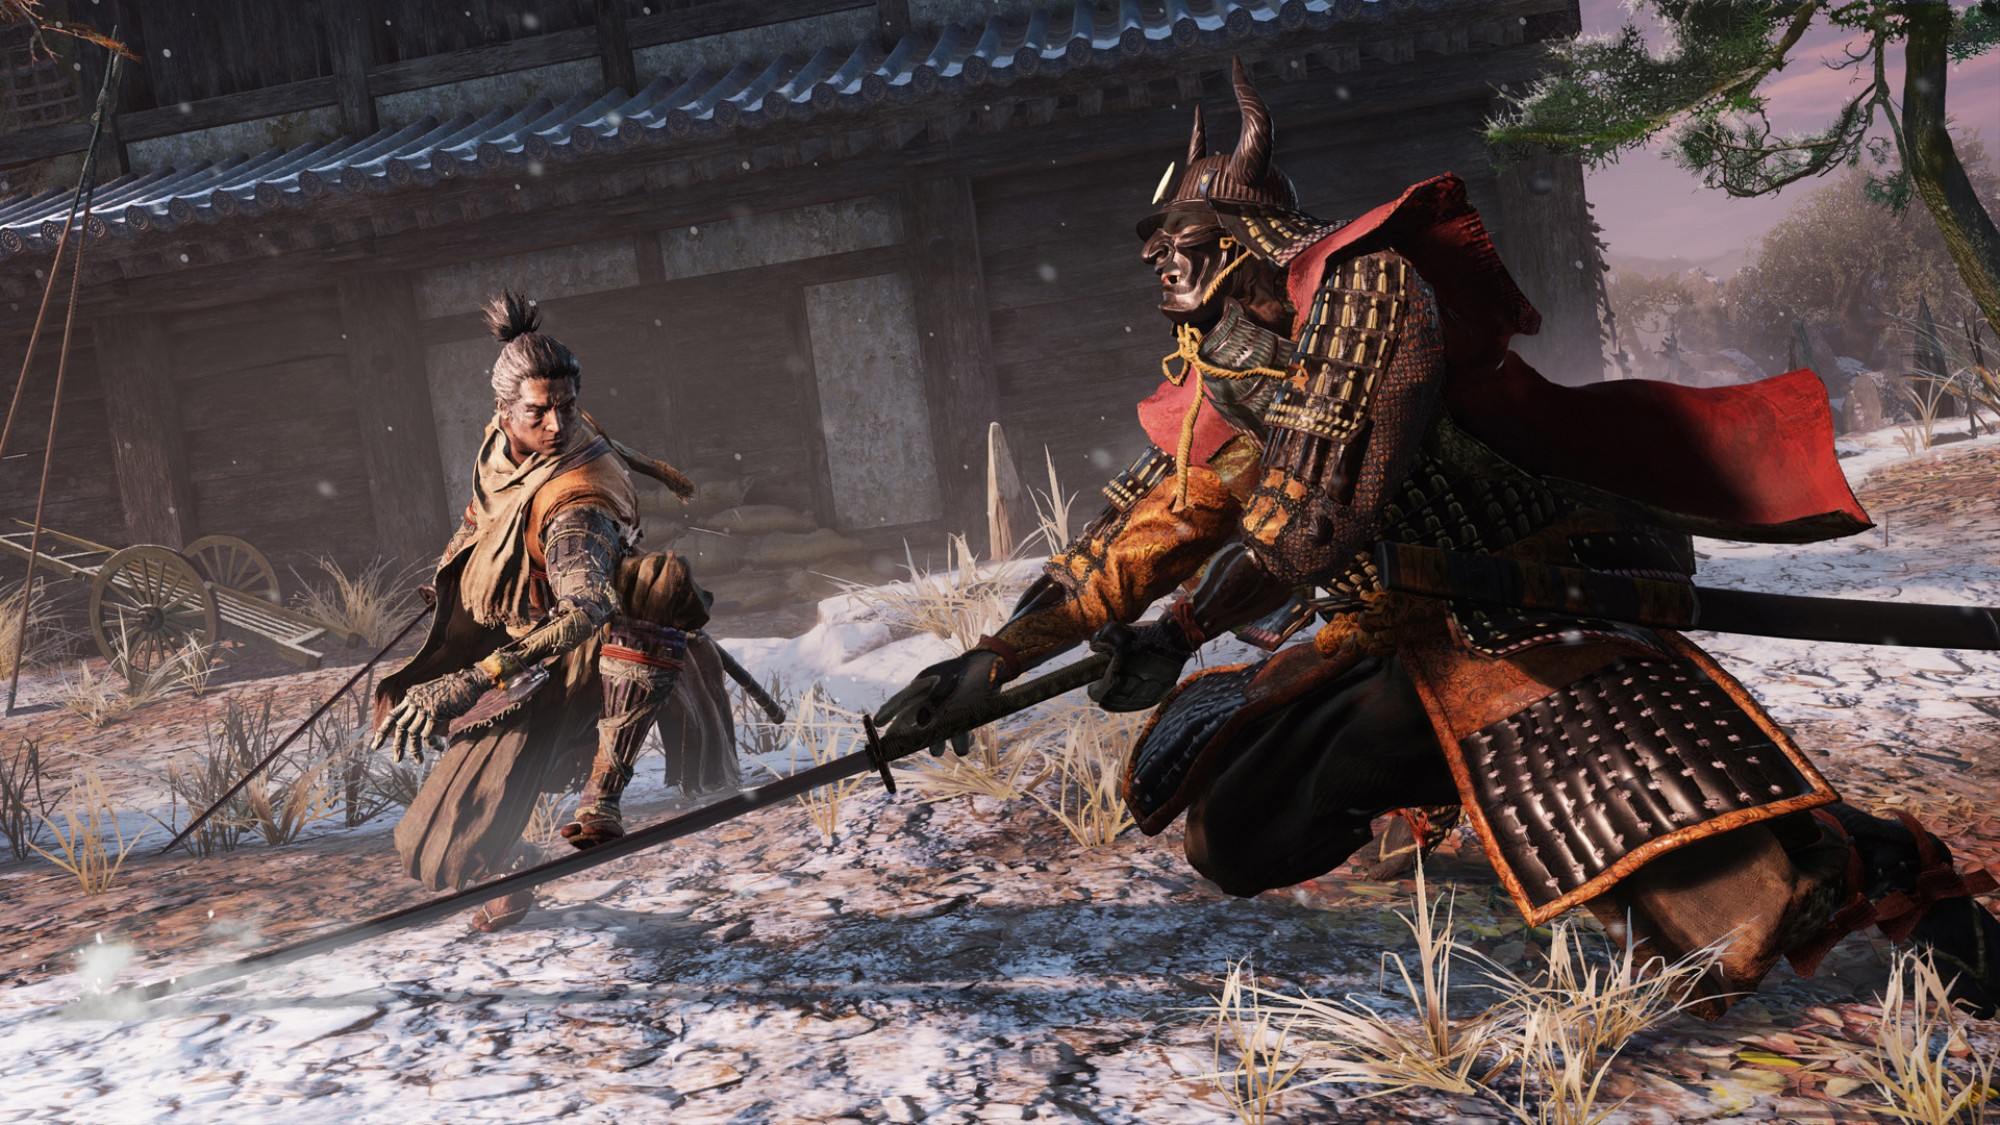 15 Hours In, 'Sekiro' Gave Me a Midterm Exam That Exposed My